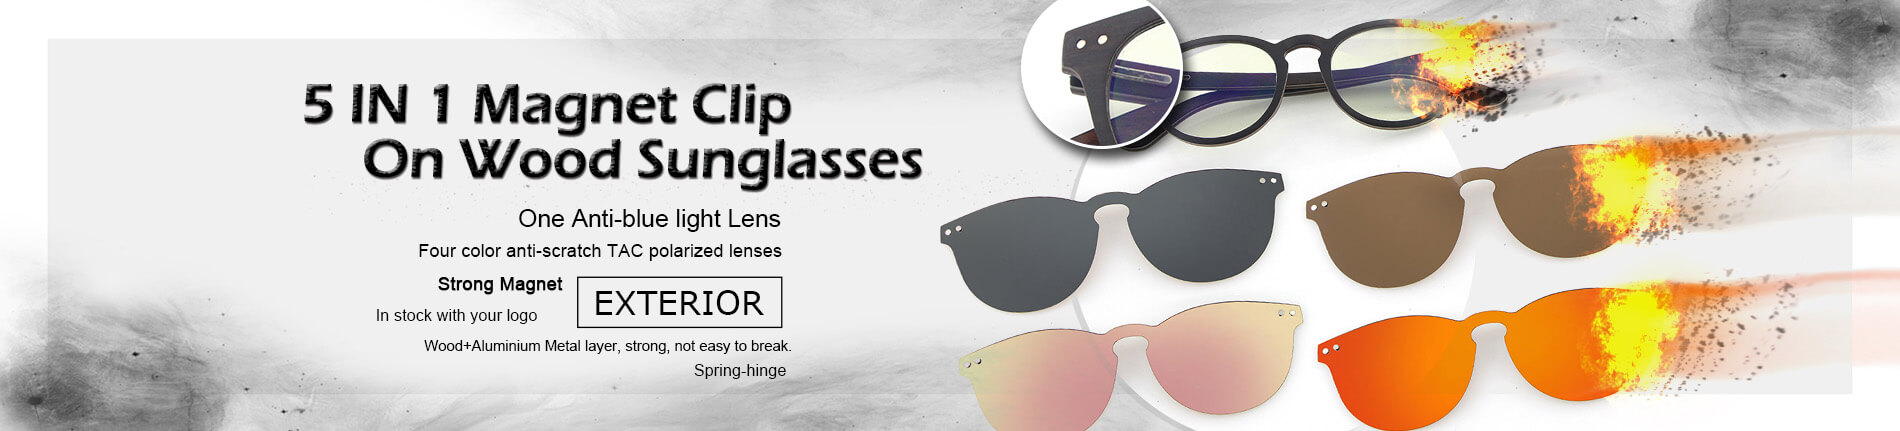 5 in 1 magnet clip on wood sunglasses